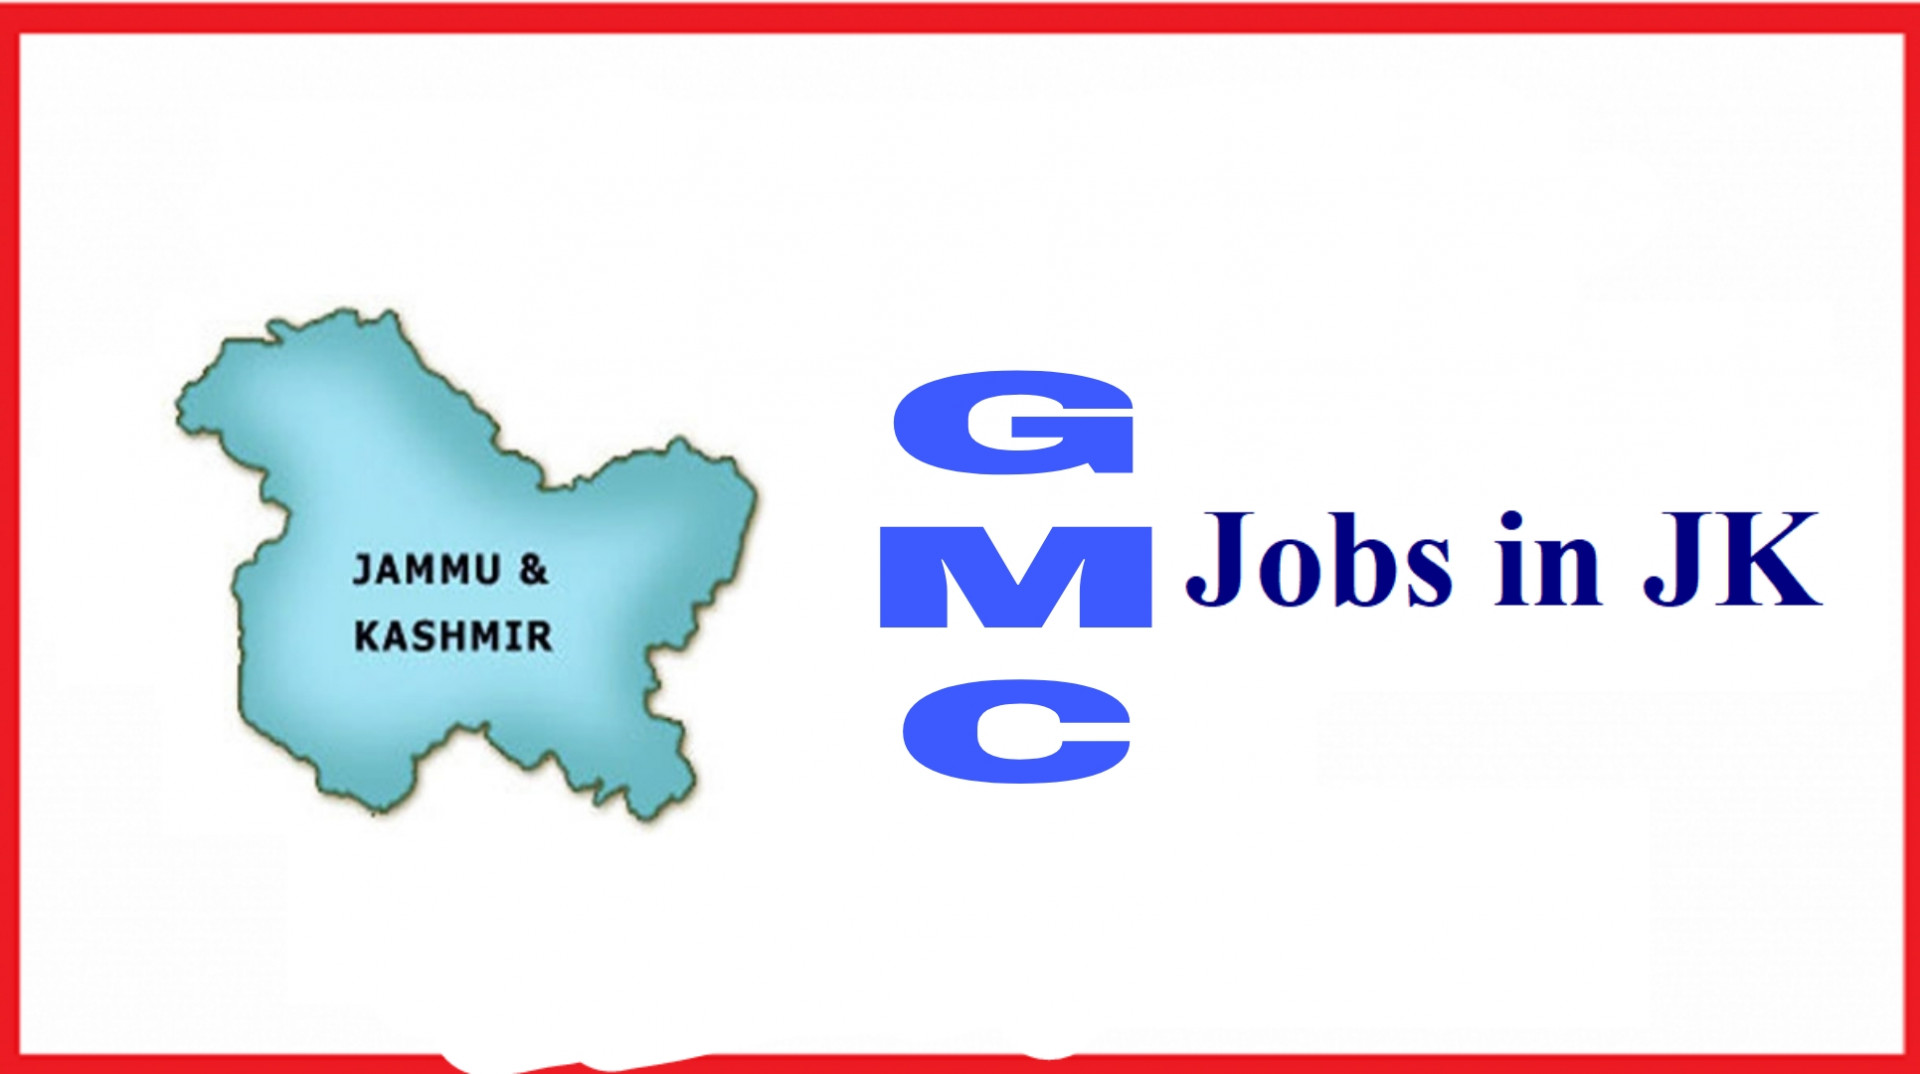 GMC Jobs Jammu Kashmir 2020 Apply Now